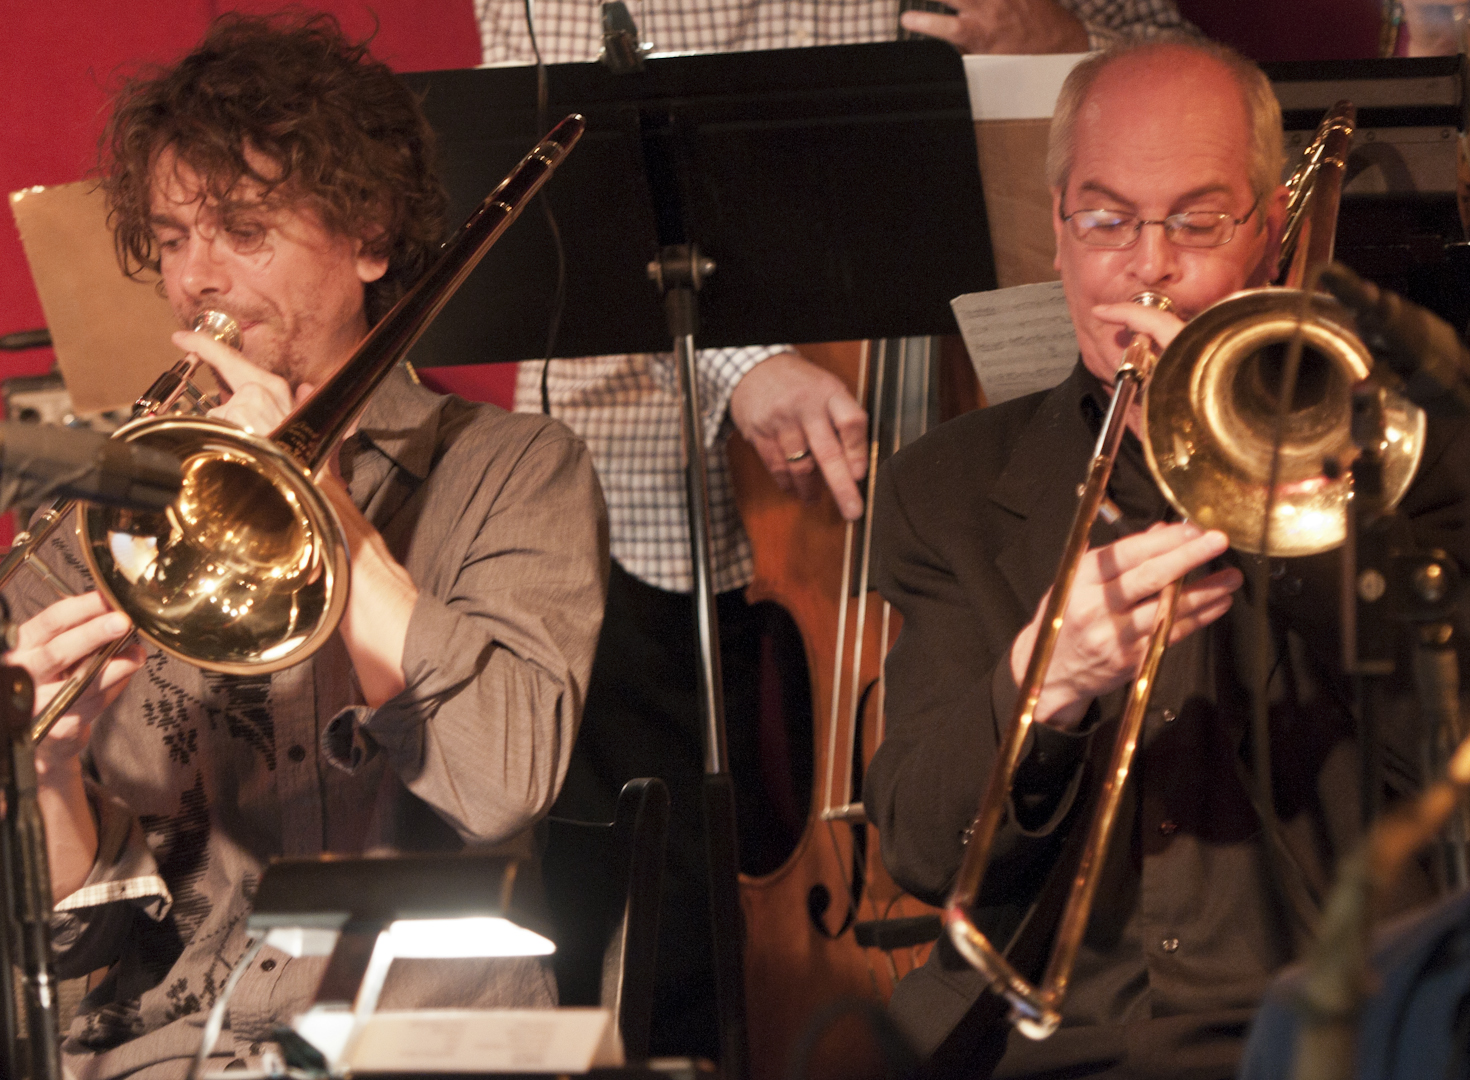 Ryan Keberle and Keith O'Quinn with the Maria Schneider Orchestra at the Jazz Standard